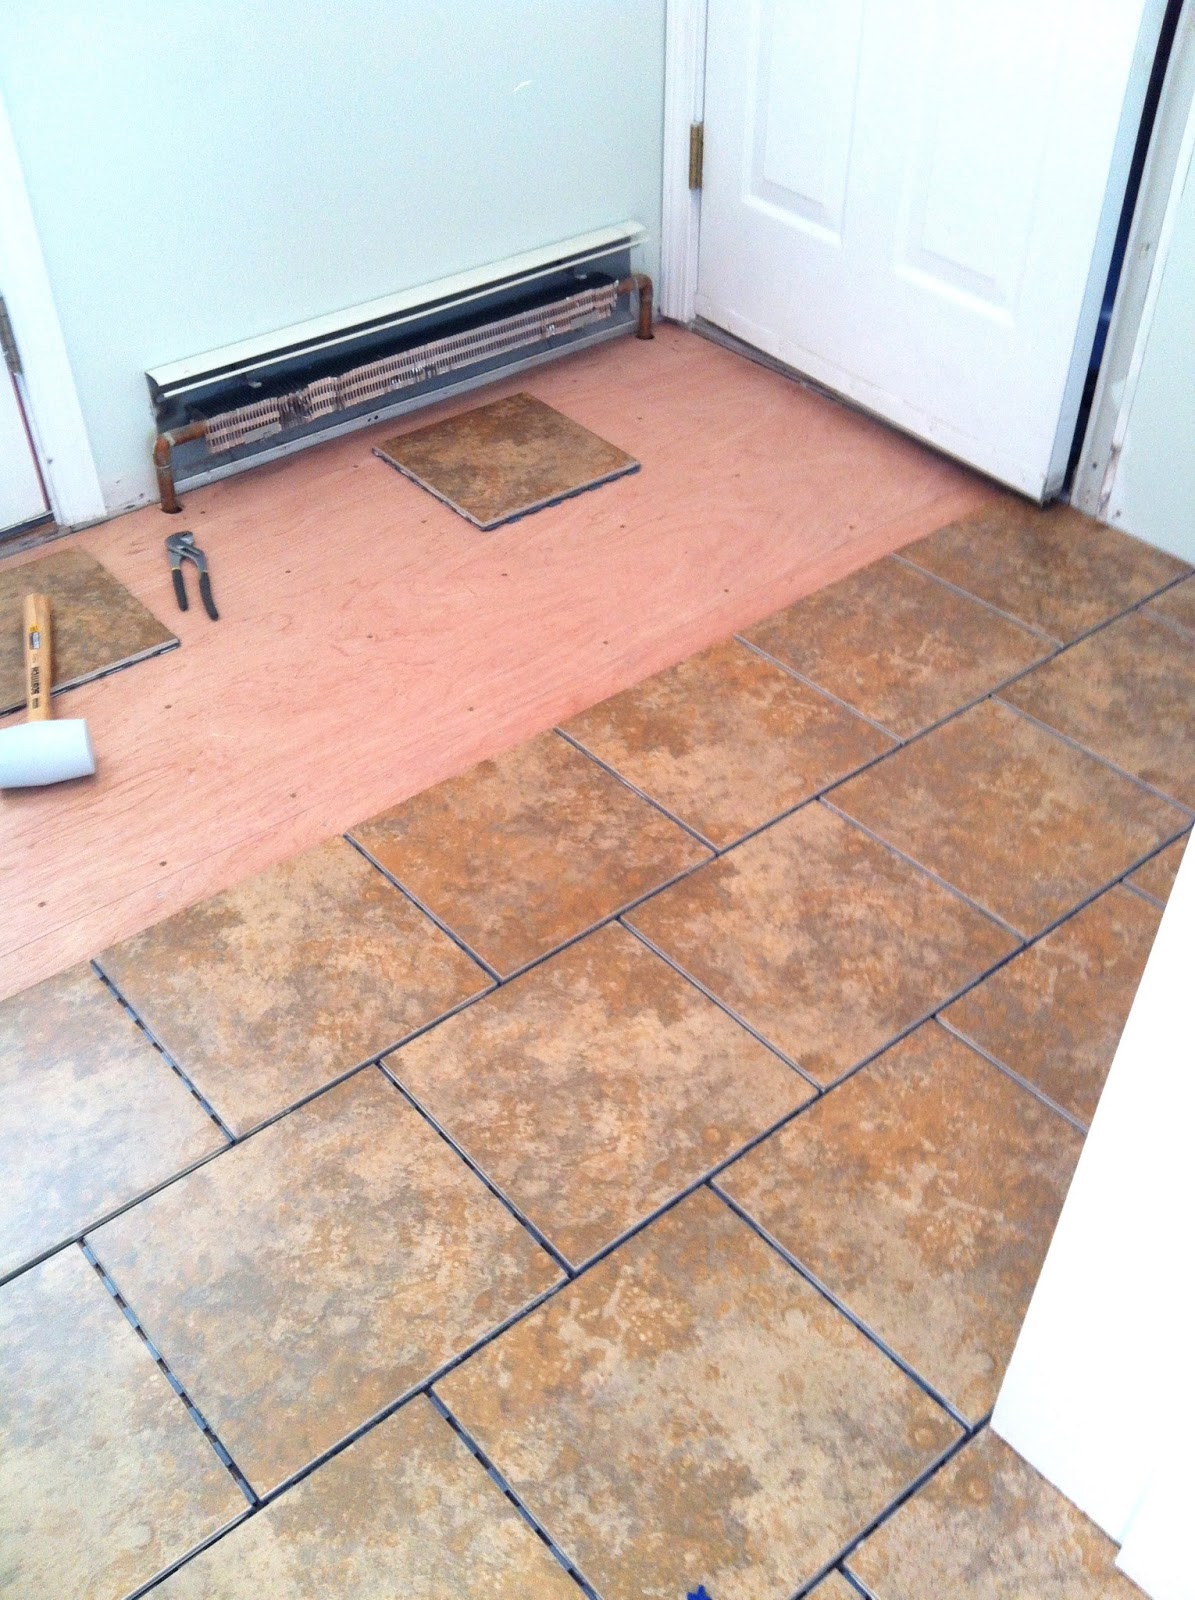 Heart maine home a review of snapstone floating tile floor a review of snapstone floating tile floor dailygadgetfo Image collections